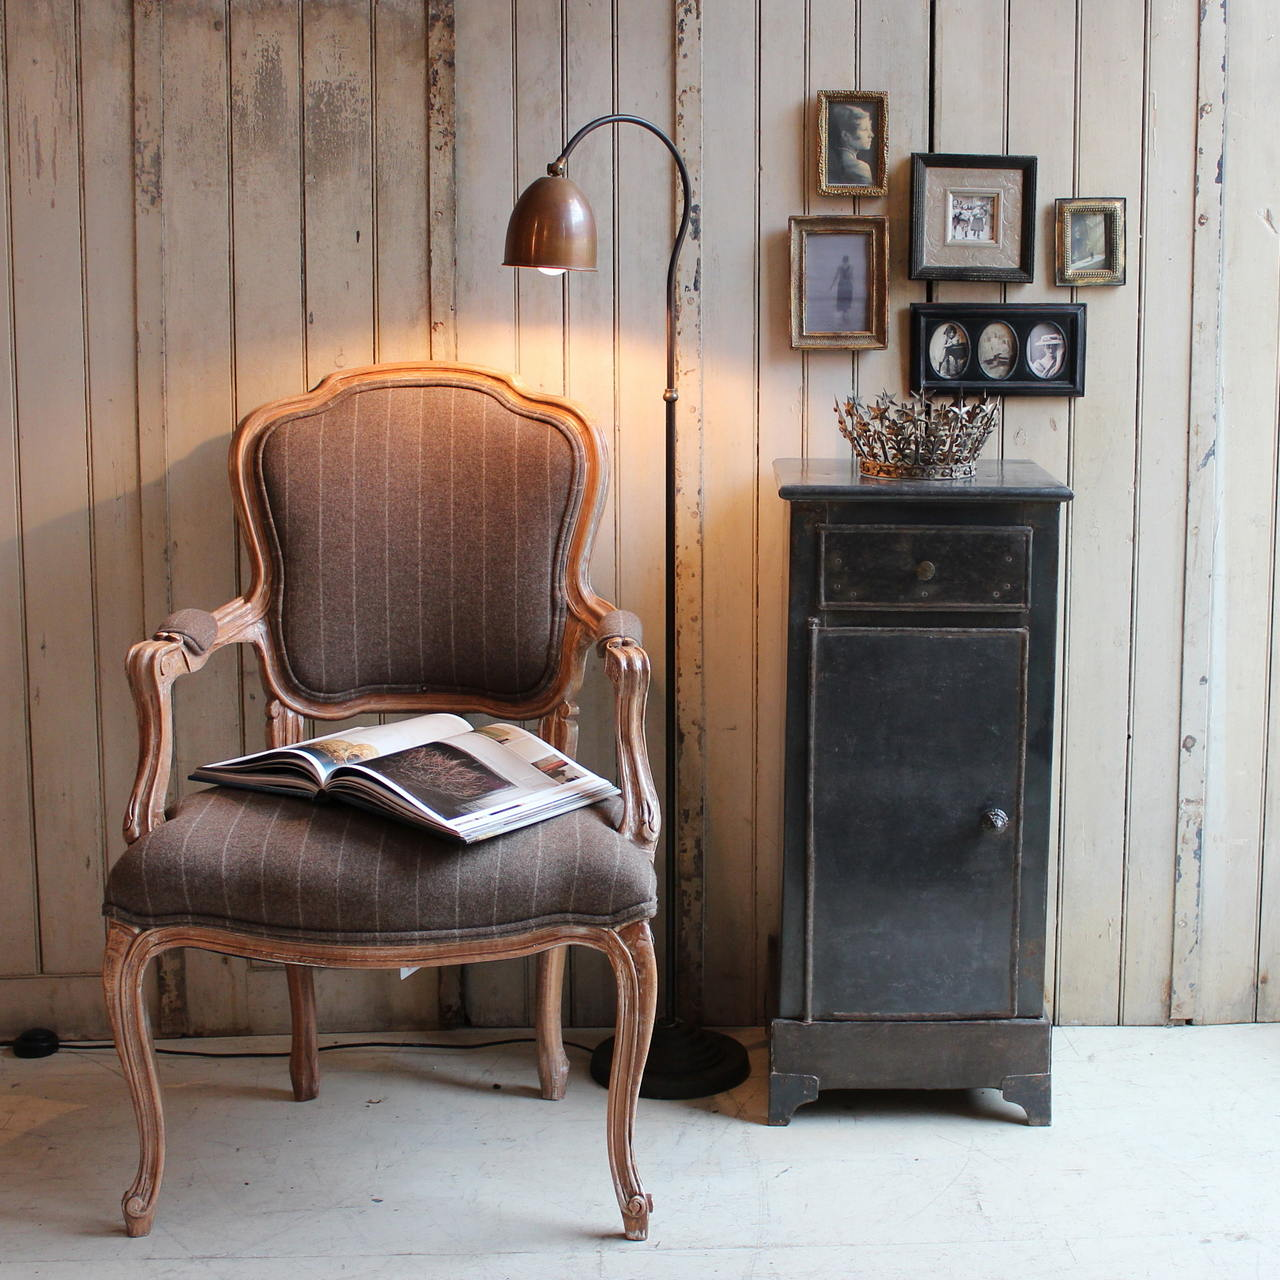 Pictures of vintage furniture